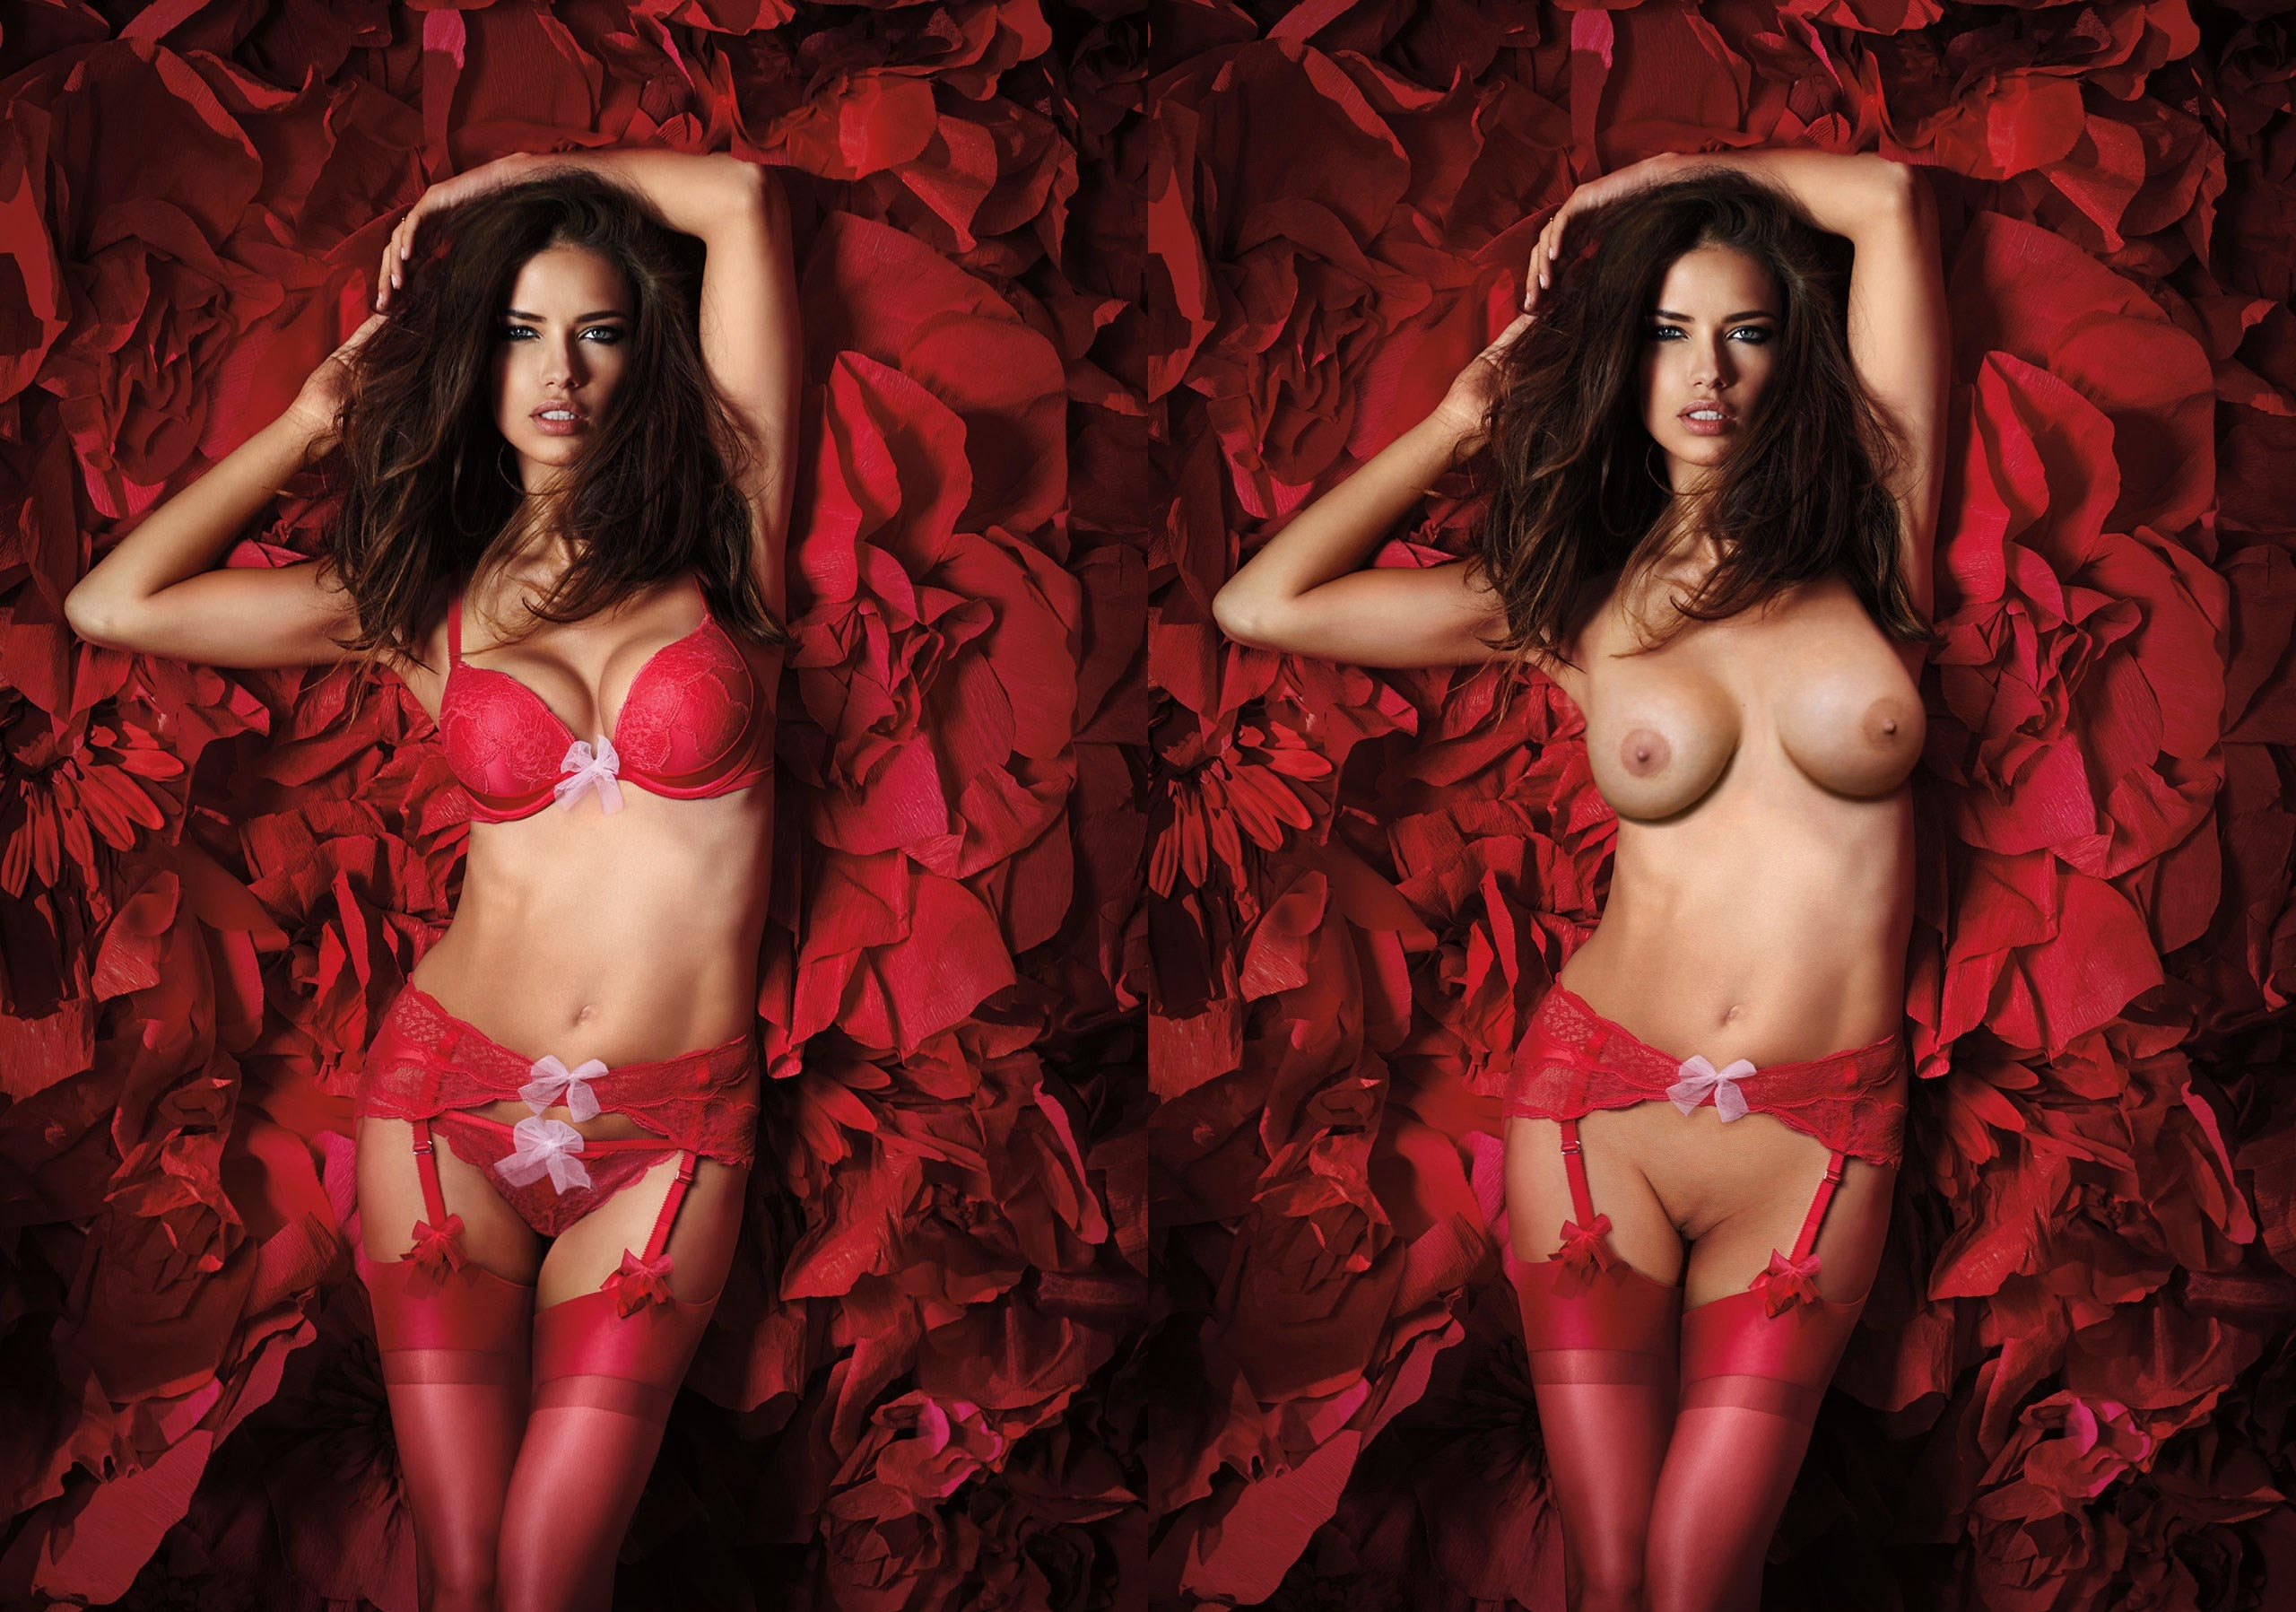 nude-adriana-lima-pussy-show-us-your-wife-pictures